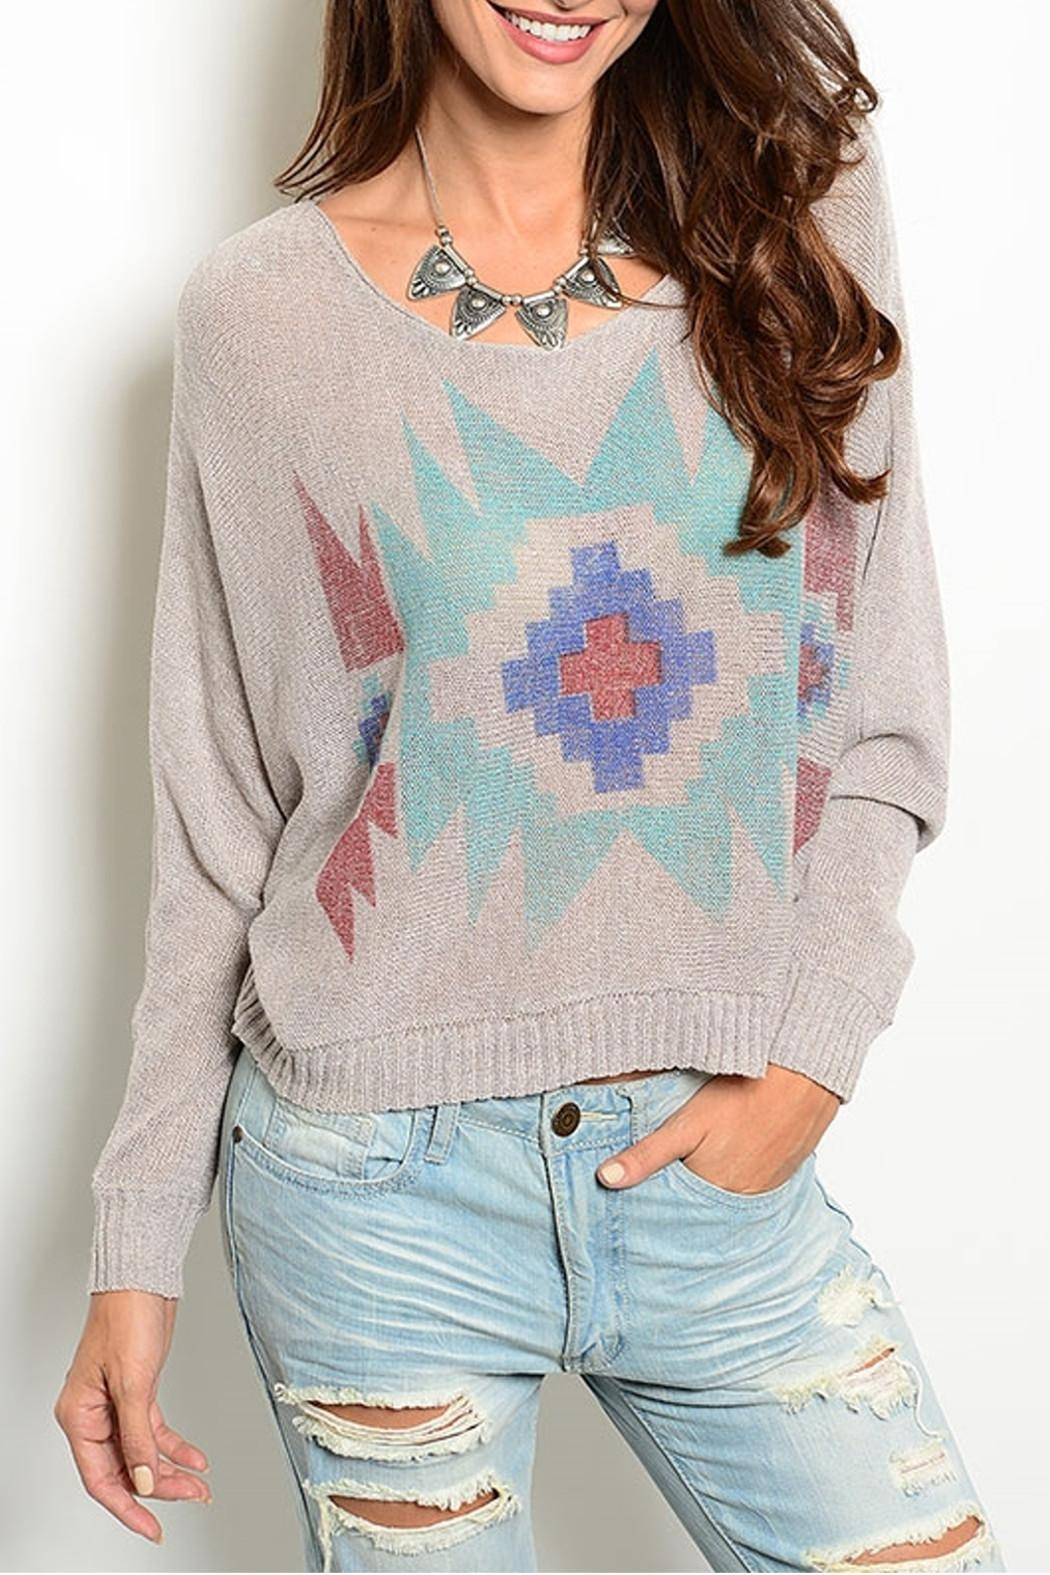 Wise & Pretty Tribal Print Top - Front Cropped Image